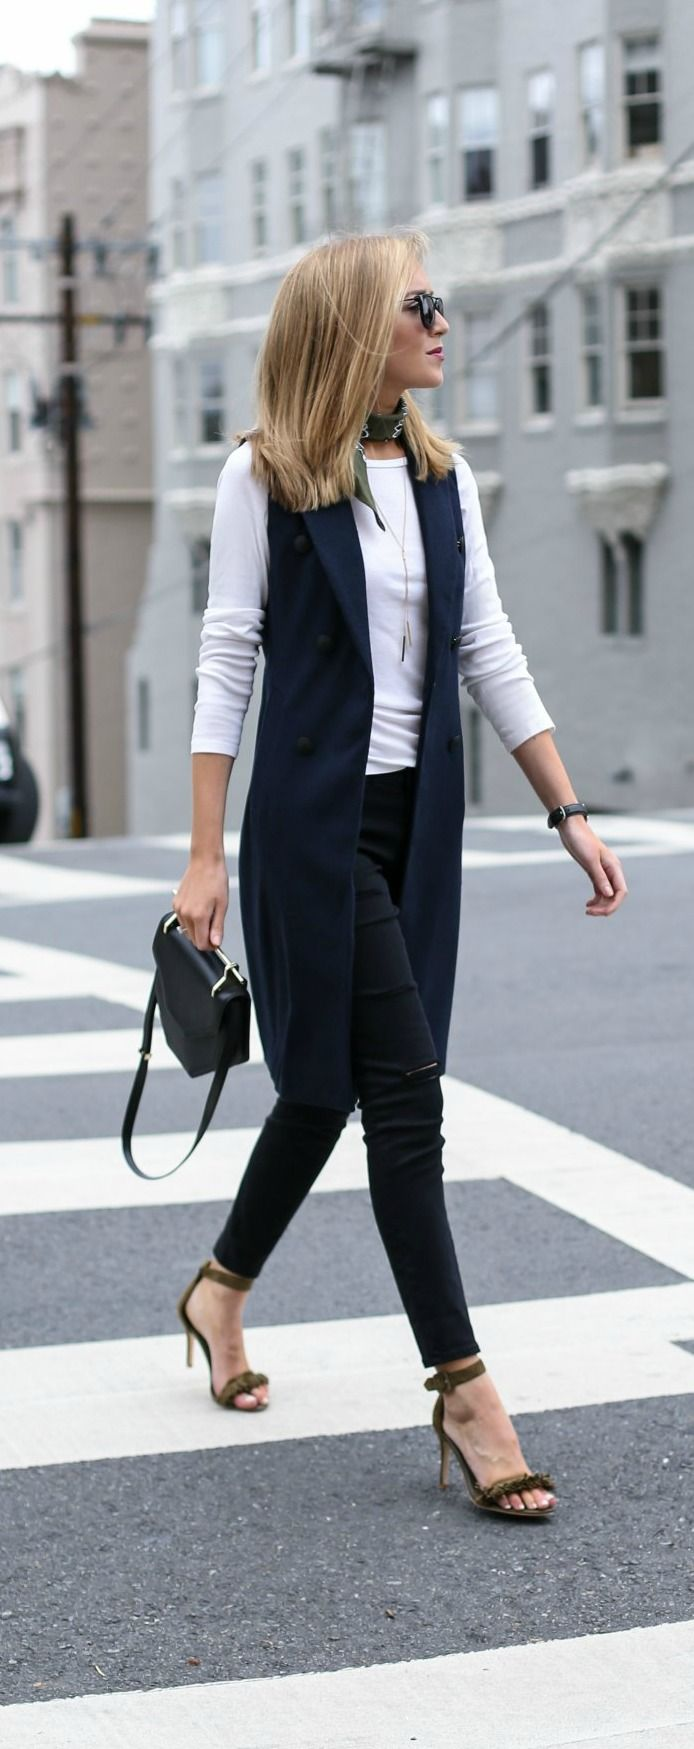 navy double-breasted vest, black distressed high waisted skinny jeans, white long sleeve tee, olive fringe heeled sandals, black handbag, olive bandana neck scarf + sunglasses {rag & bone, bp., caslon, joie, m2malletier} http://www.99wtf.net/category/trends/